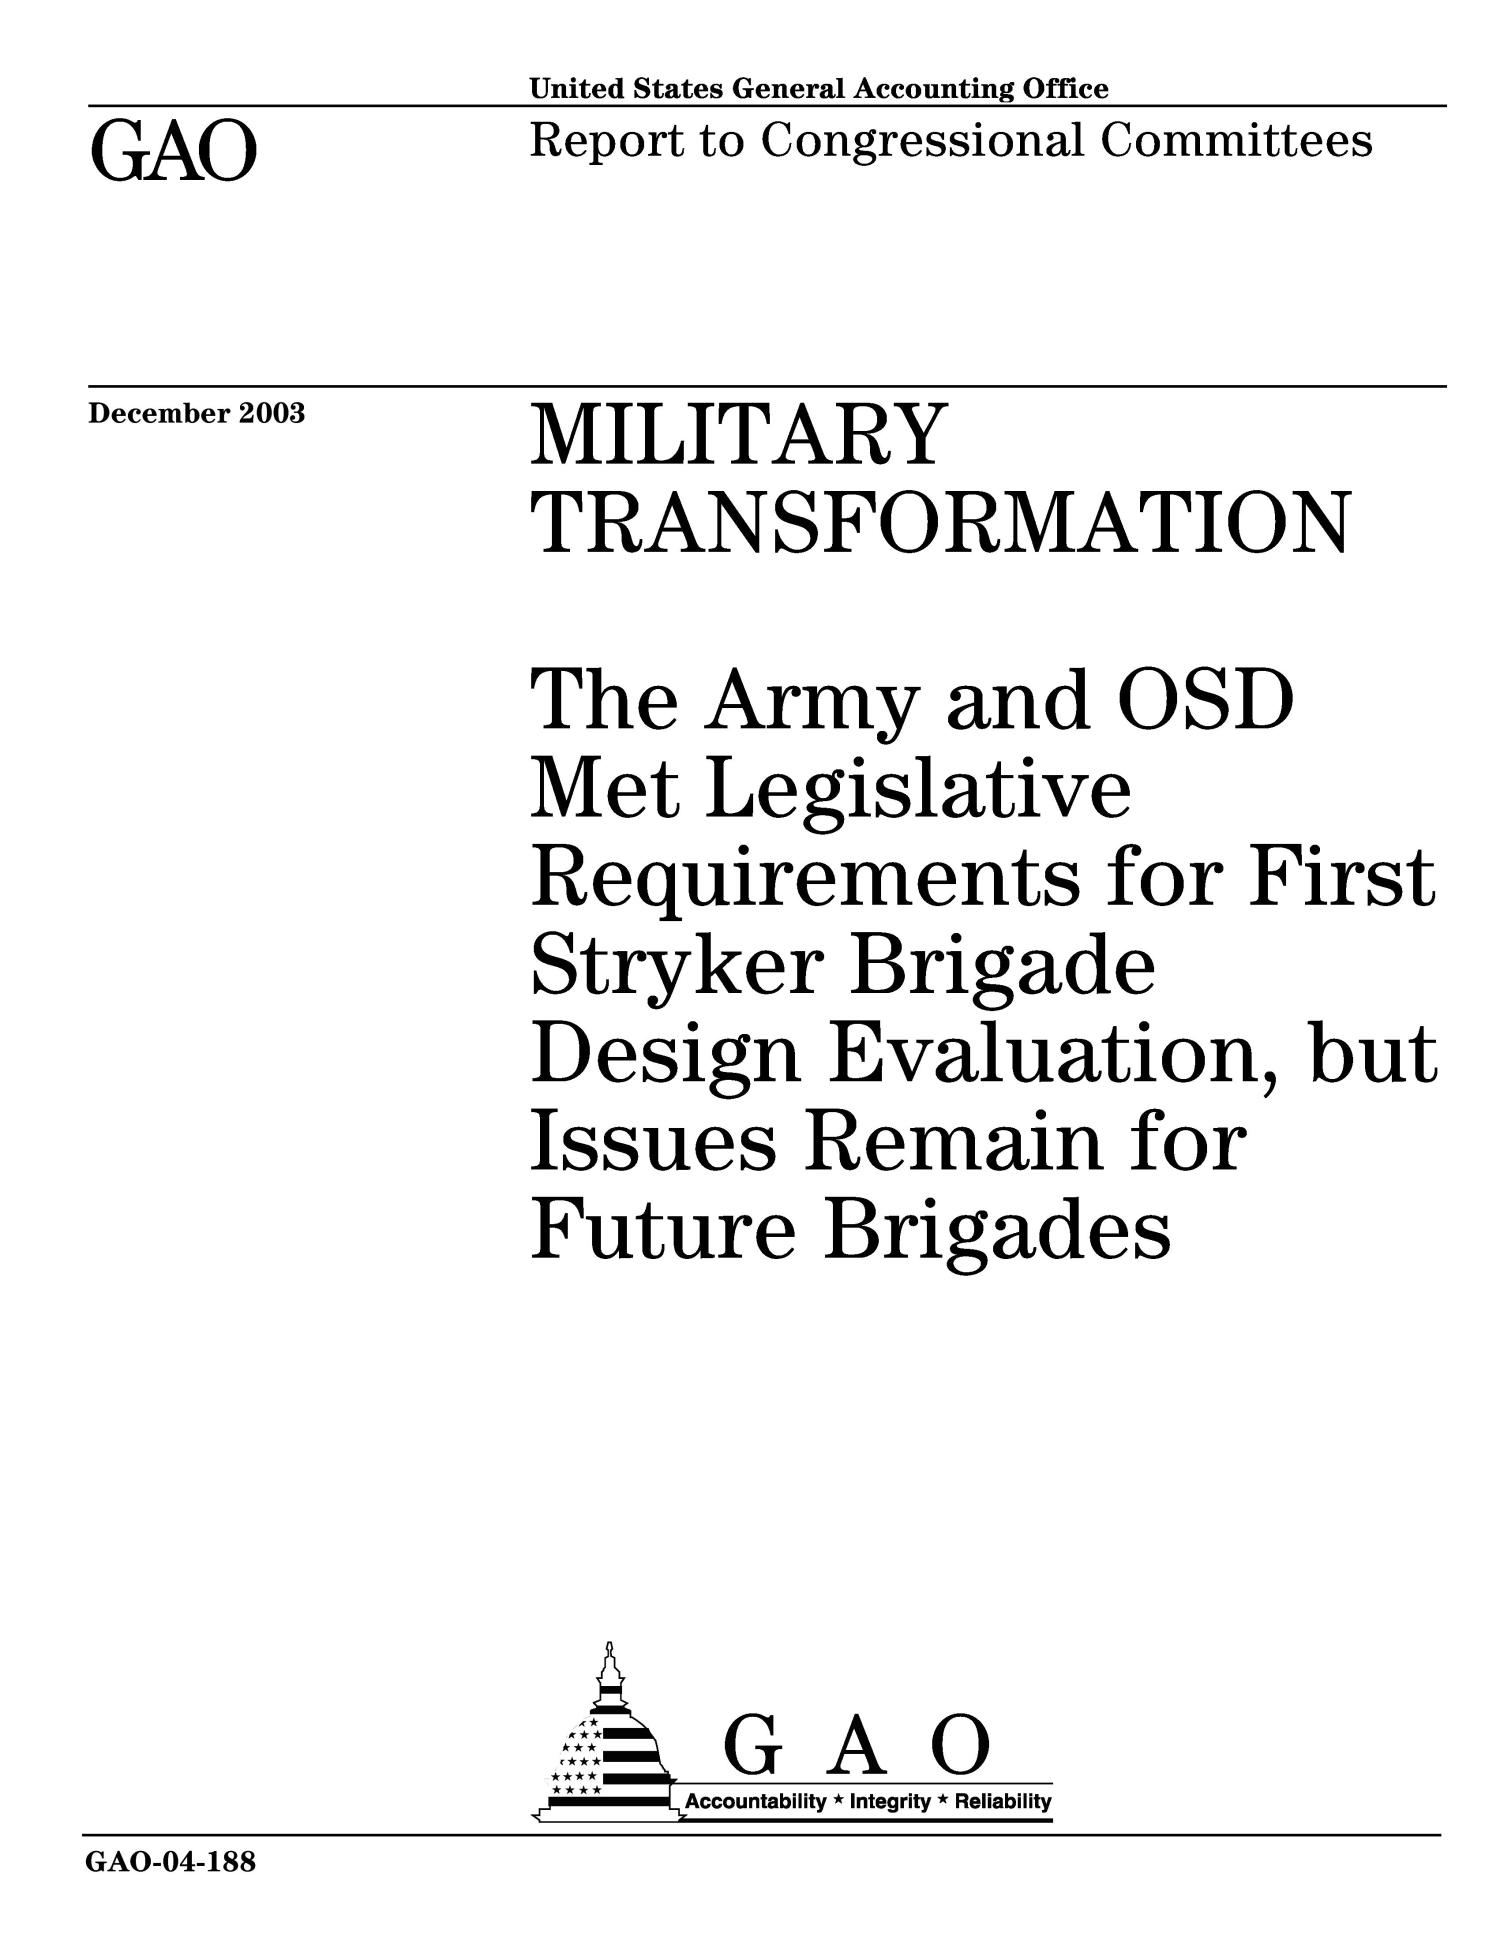 Military Transformation: The Army and OSD Met Legislative Requirements for First Stryker Brigade Design Evaluation, but Issues Remain for Future Brigades                                                                                                      [Sequence #]: 1 of 56